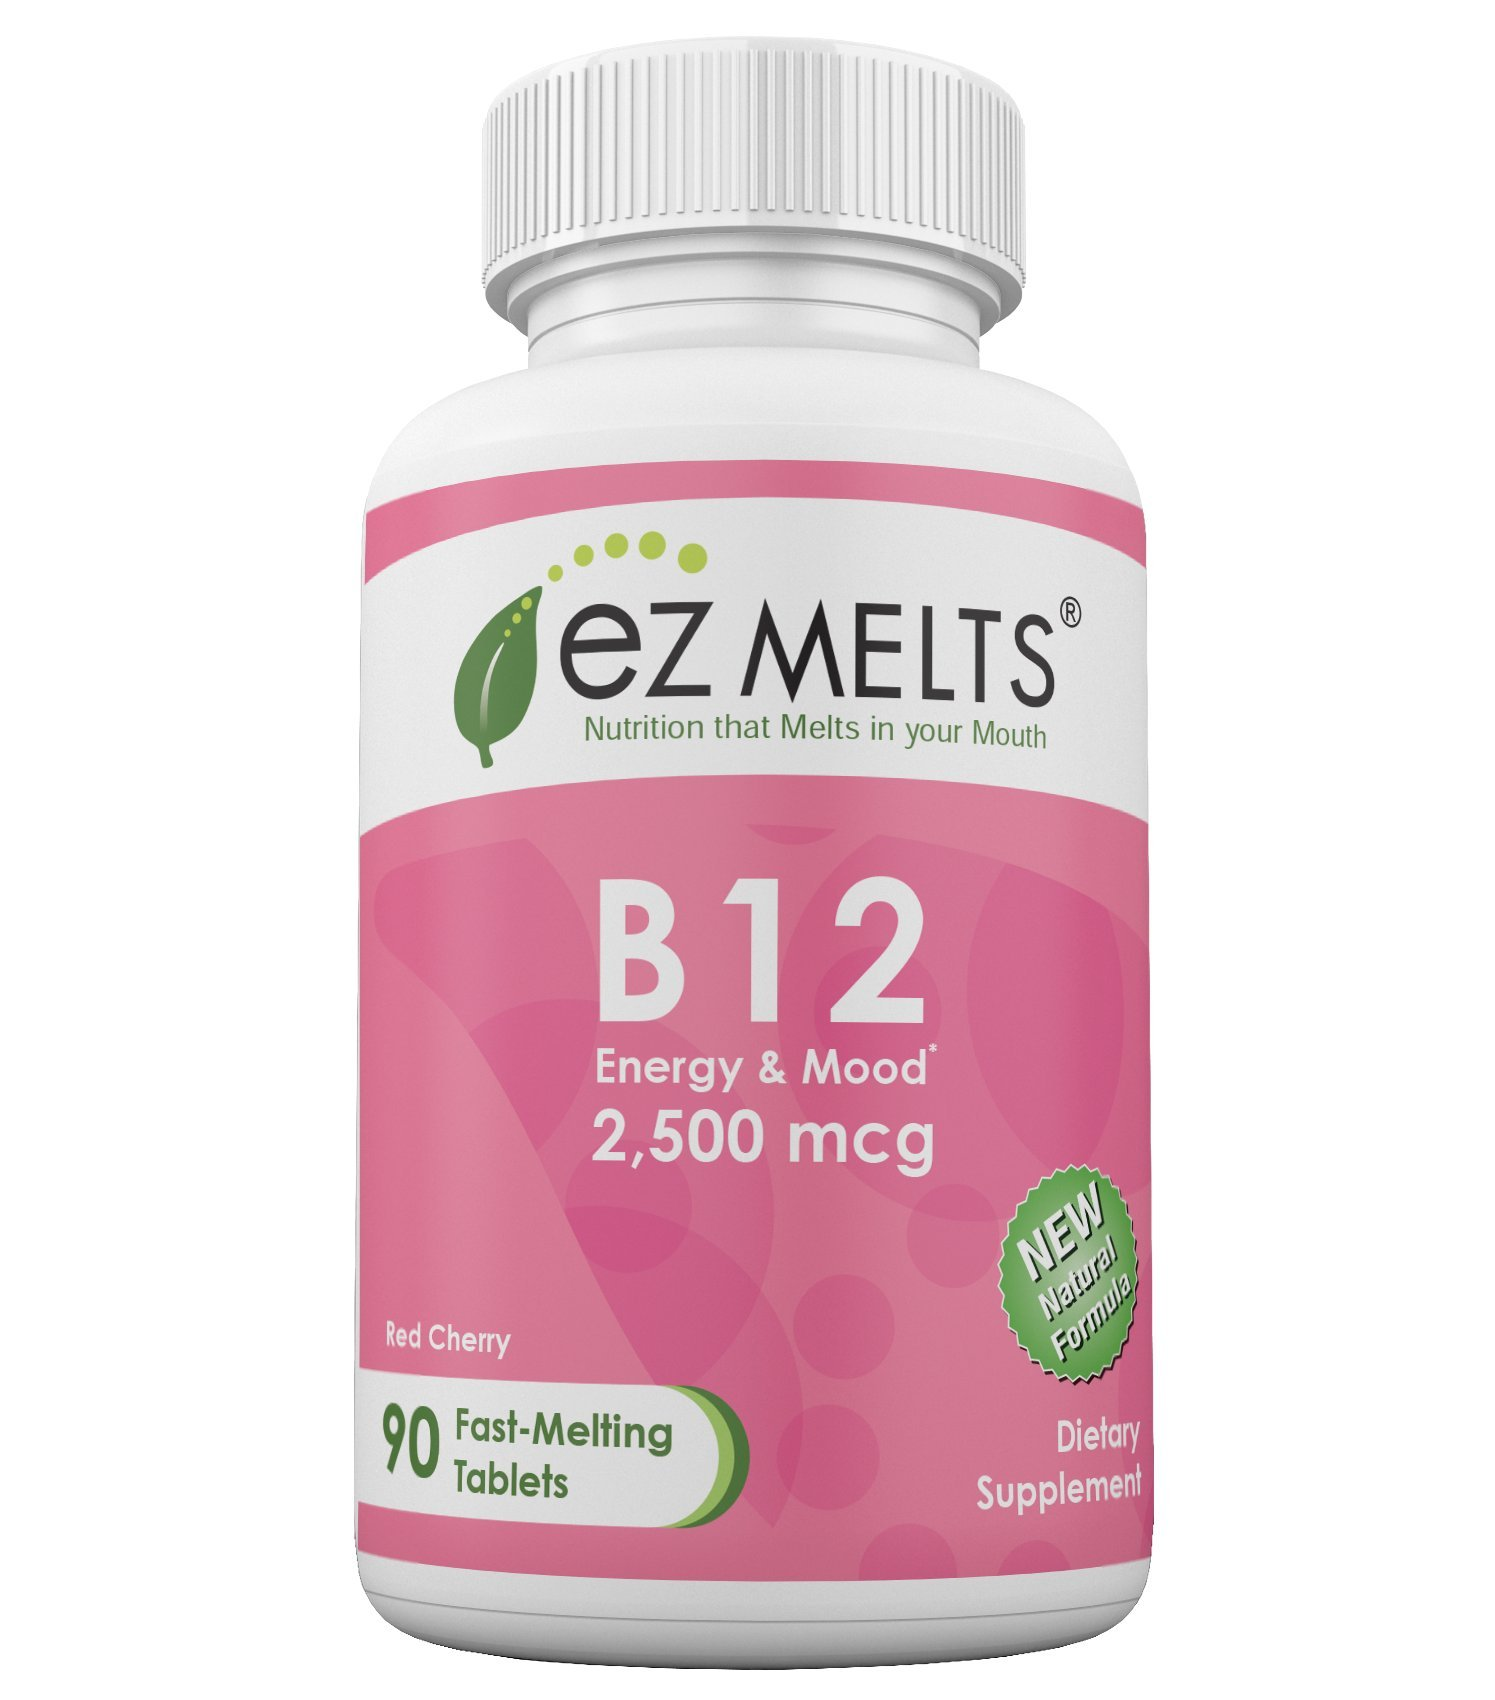 EZ Melts B12, 2,500 mcg, Dissolvable Vitamins, Vegan, Zero Sugar, Natural Cherry Flavor, 90 Fast Melting Tablets, Vitamin B12 Supplement